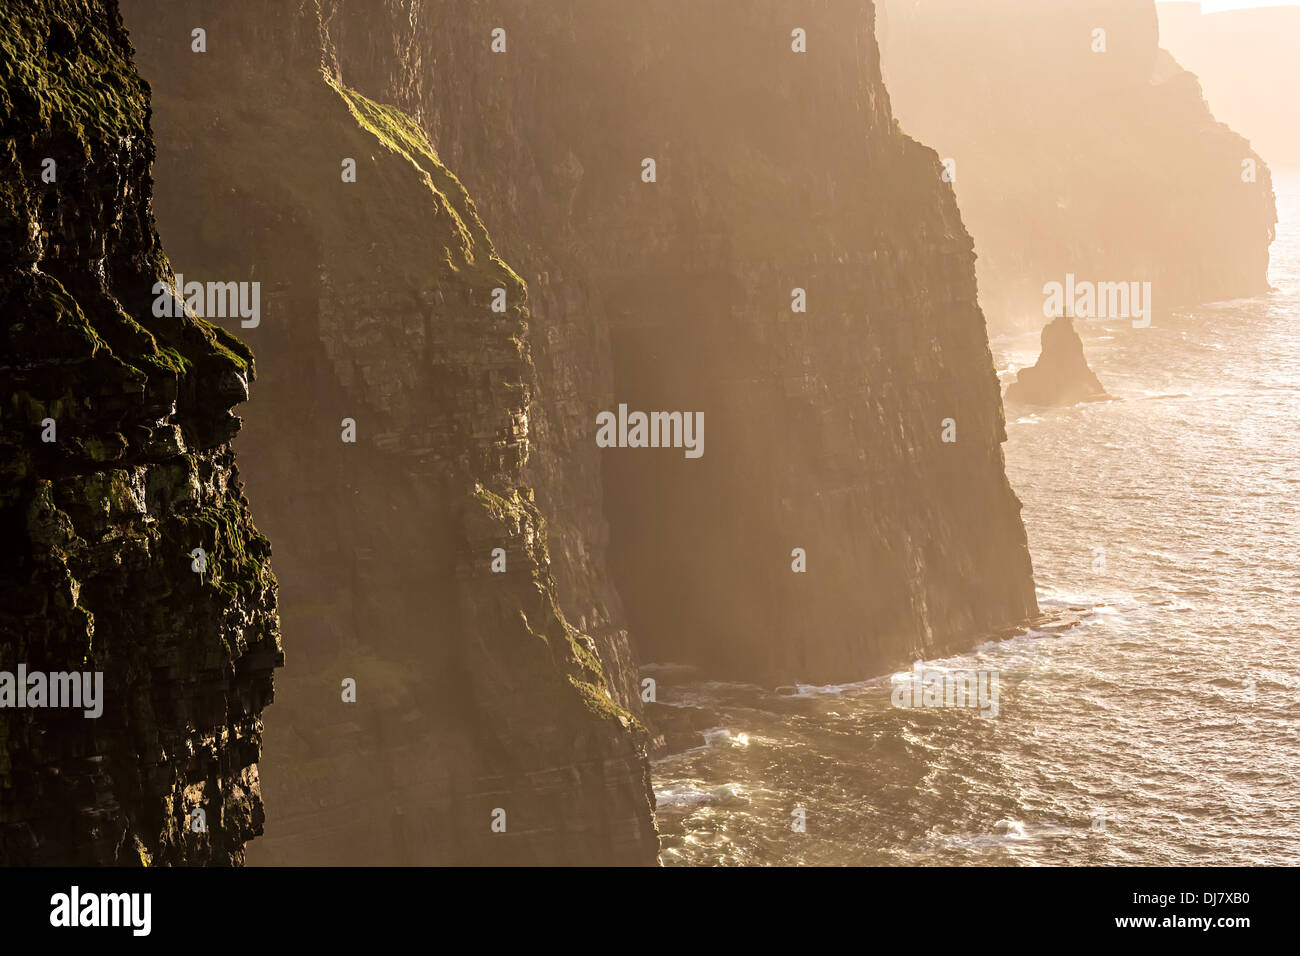 Cliffs of Moher, Co. Clare, west coast of Ireland - Stock Image